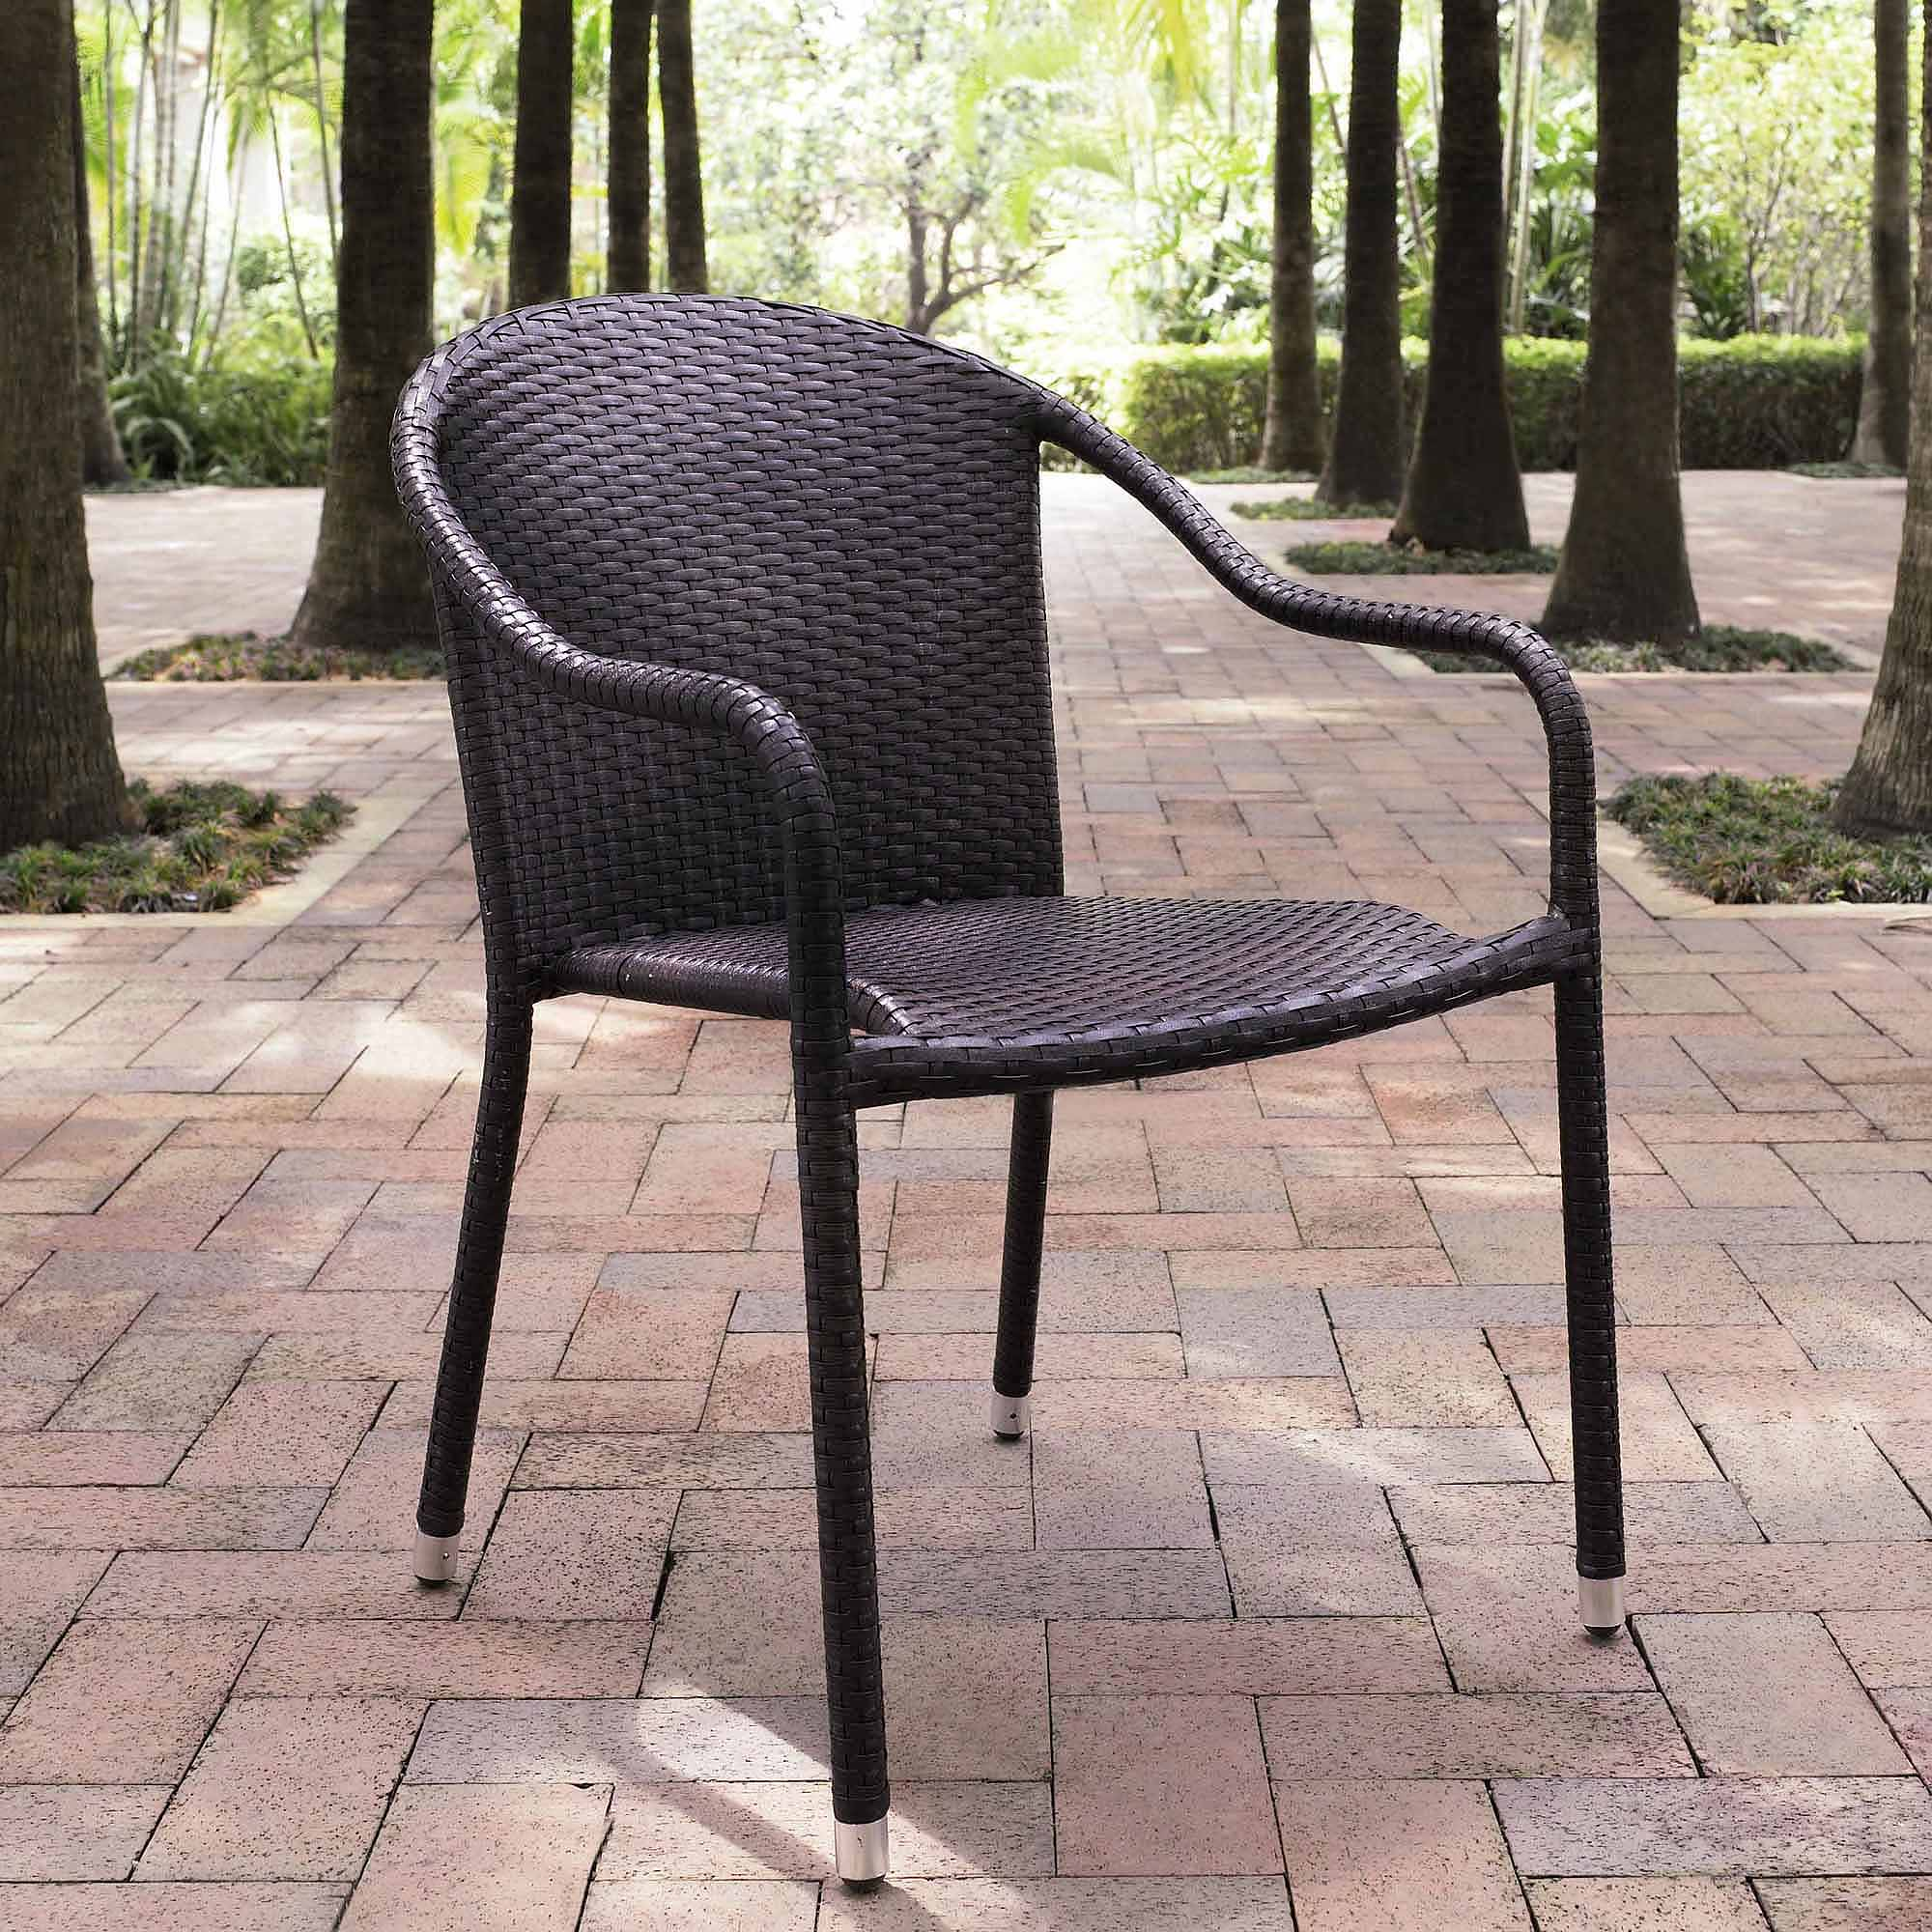 Crosley Furniture Palm Harbor Outdoor Wicker Stackable Chairs, 4pk